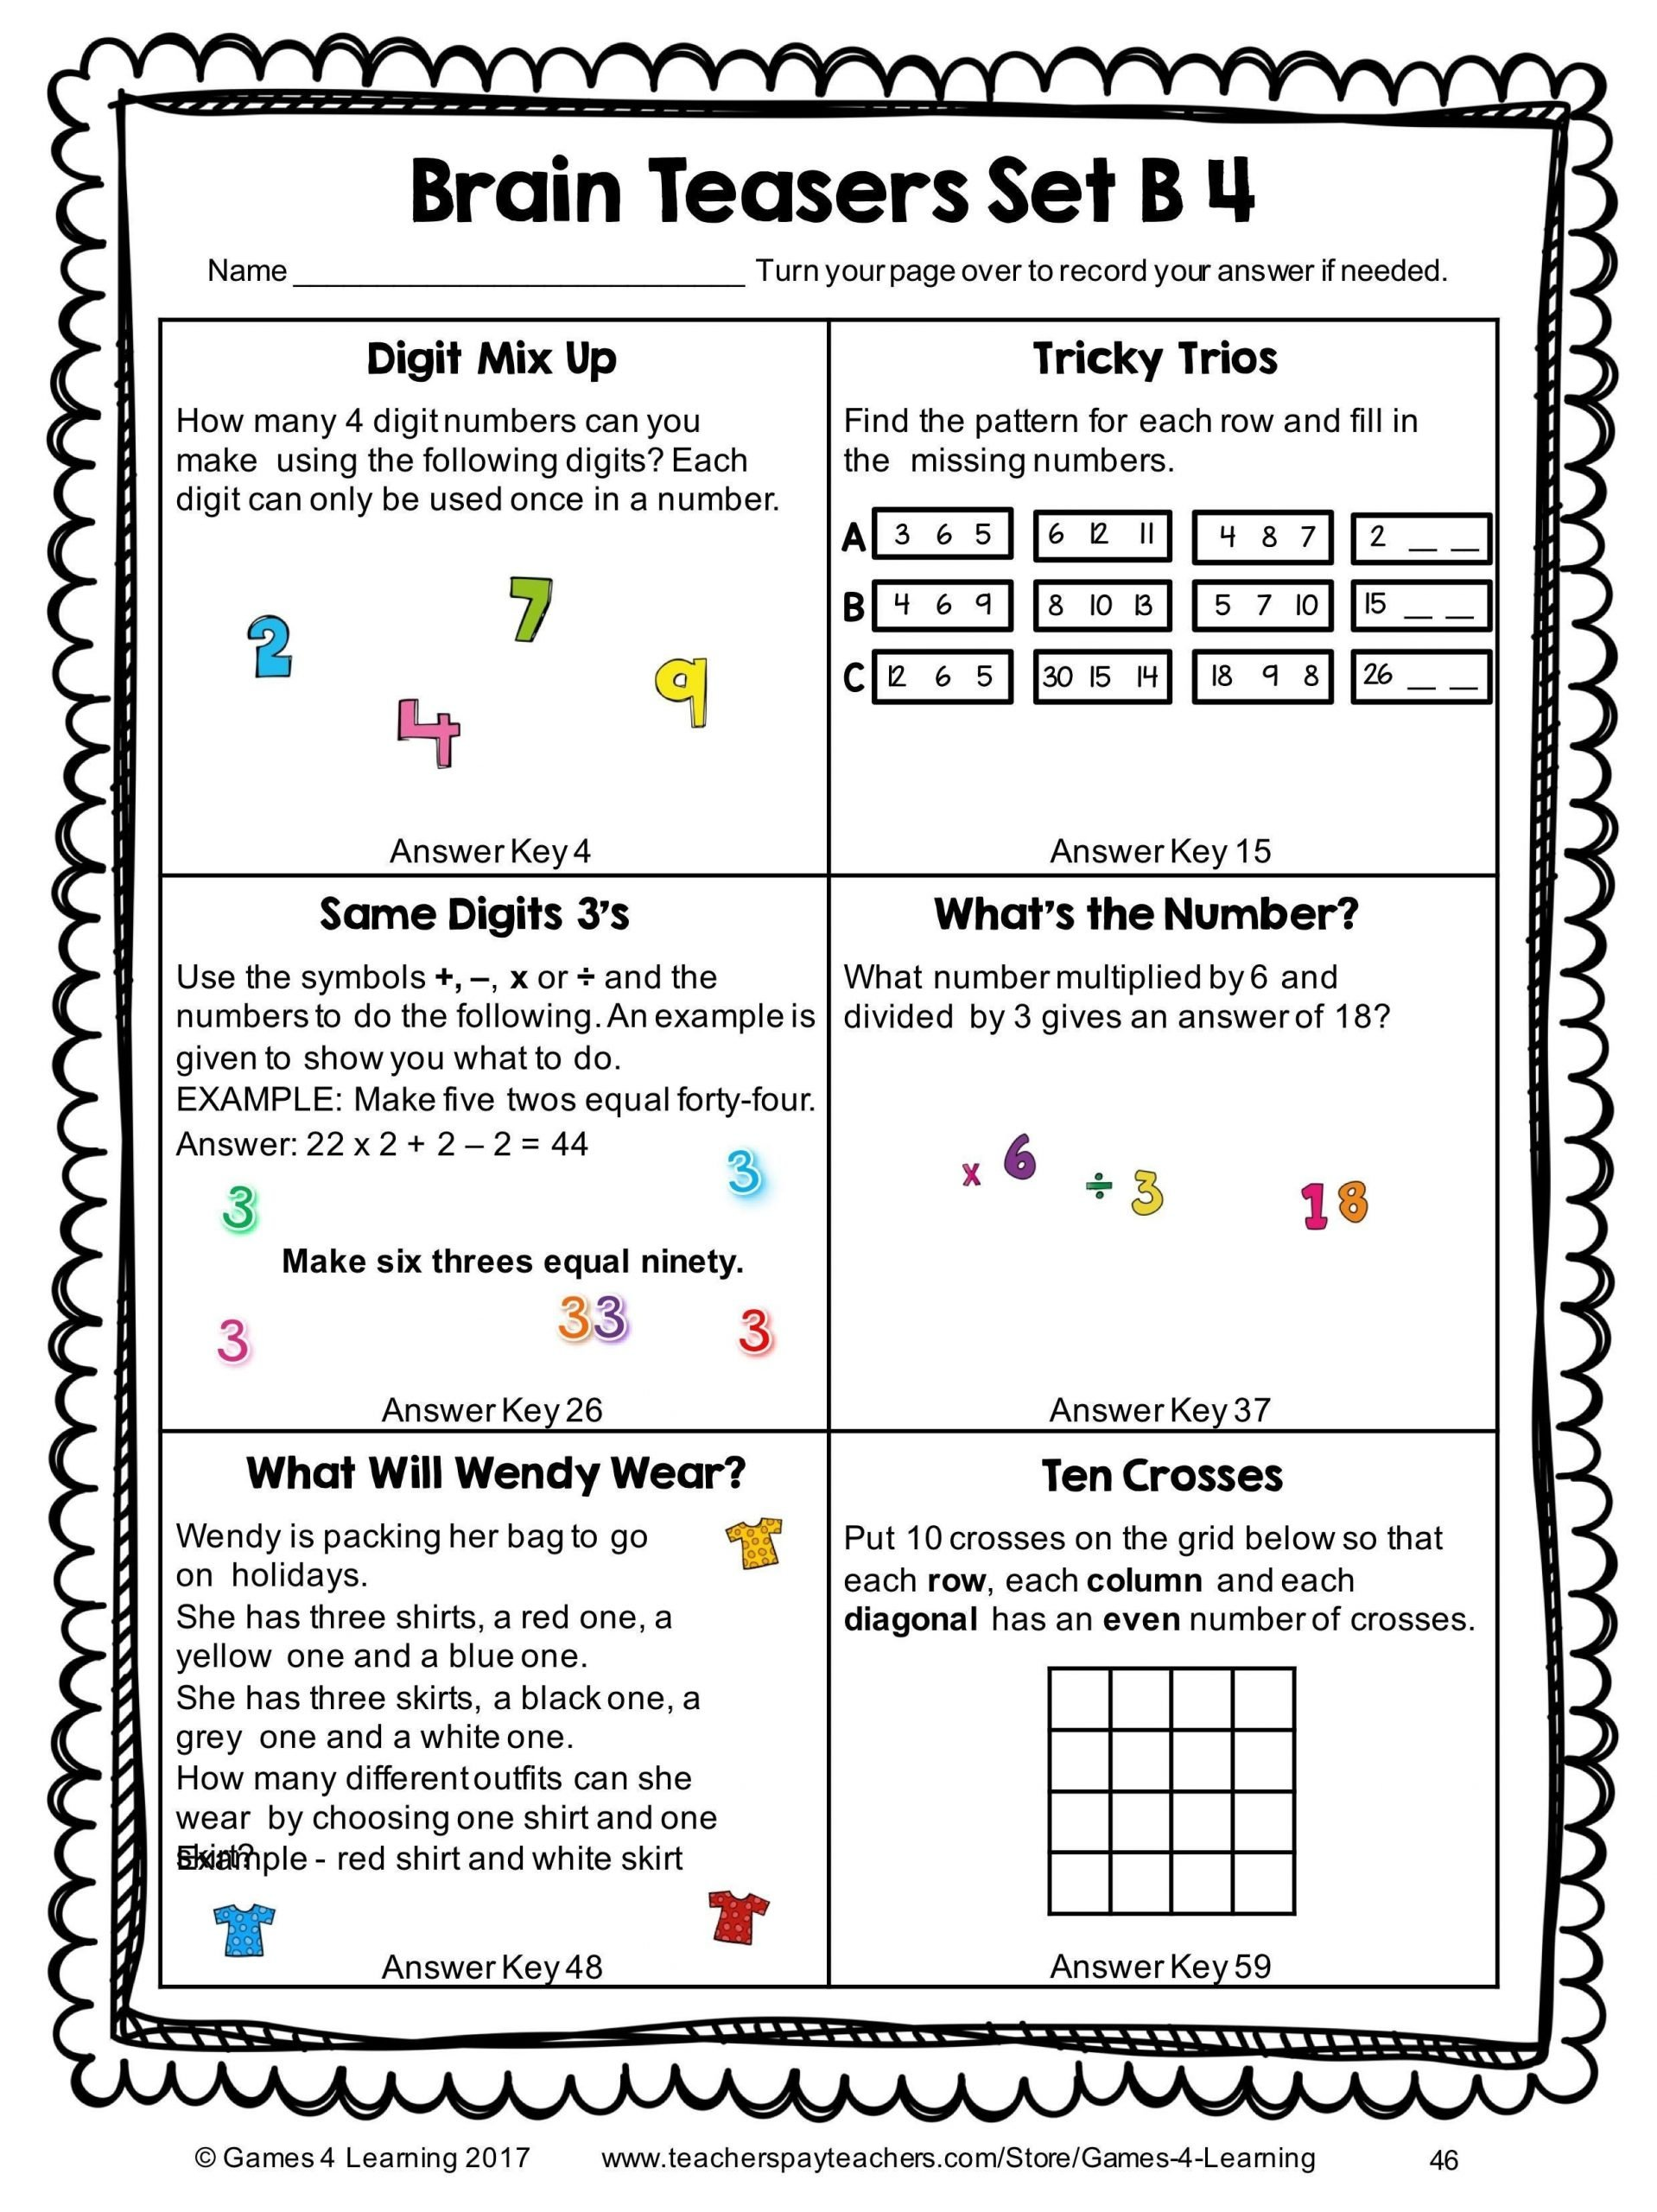 brain teasers for first grade printable math logic games new collection math brain teaser worksheets middle school